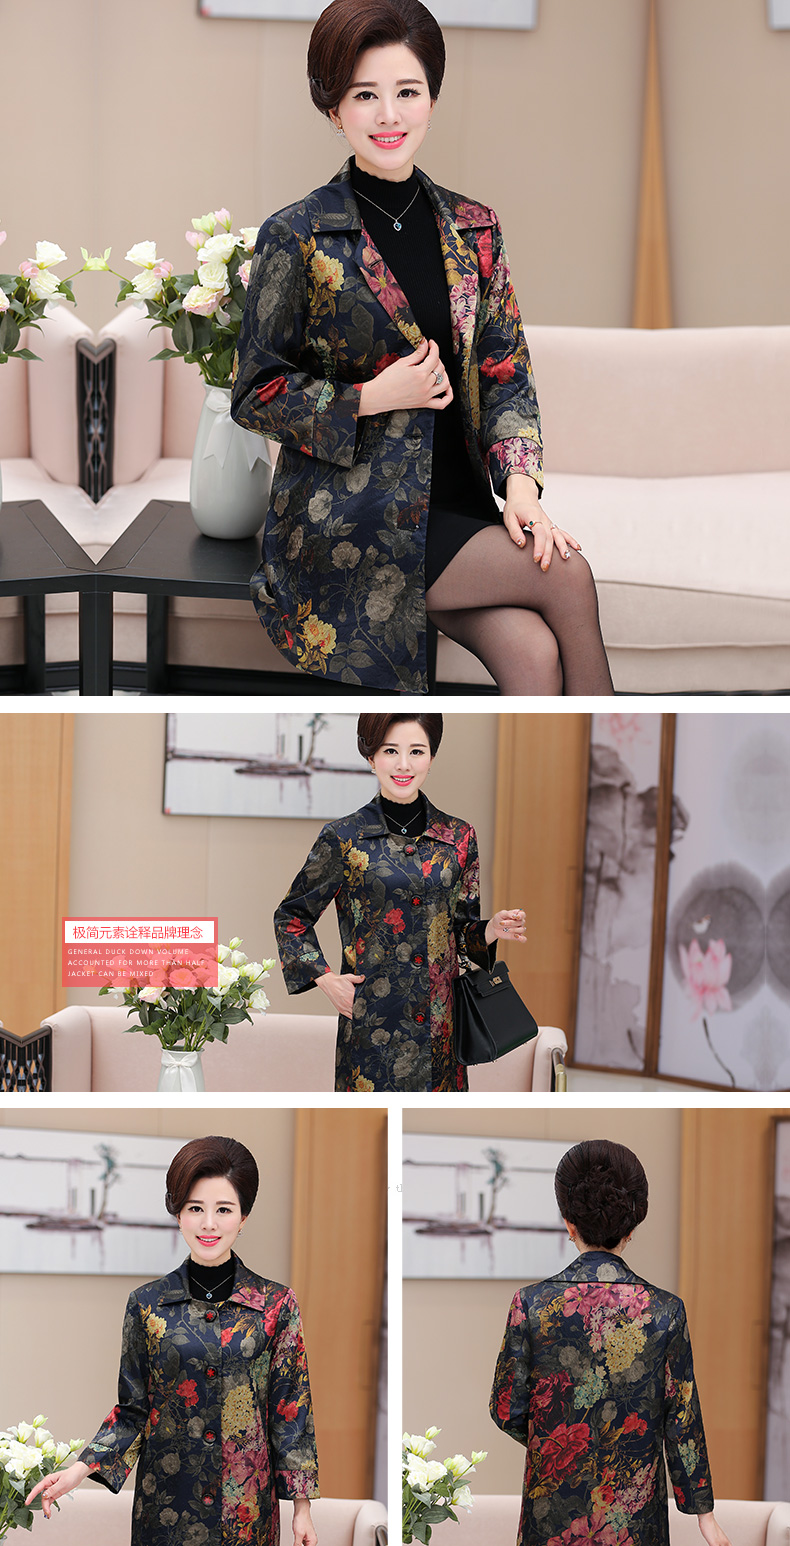 Chinese Women\'s Elegant Floral Trench Coats Single-breasted Duster Coat Matrue Woman Office Outfit Mandeau Femme Overcoats 2017 (4)